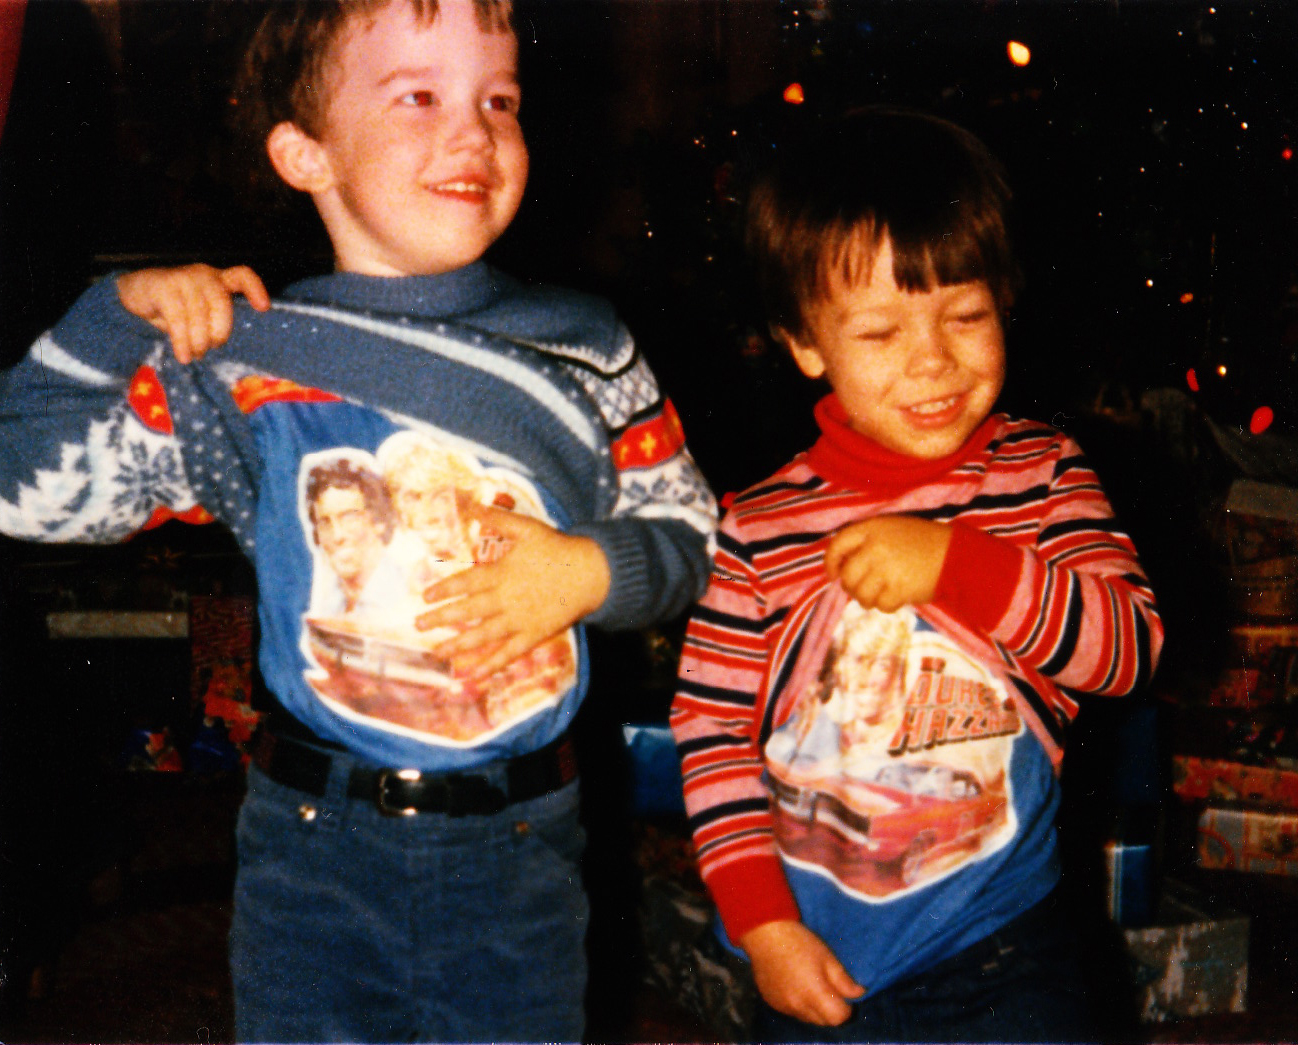 Me and my cousin, showing off our Dukes of Hazzard T-shirts.